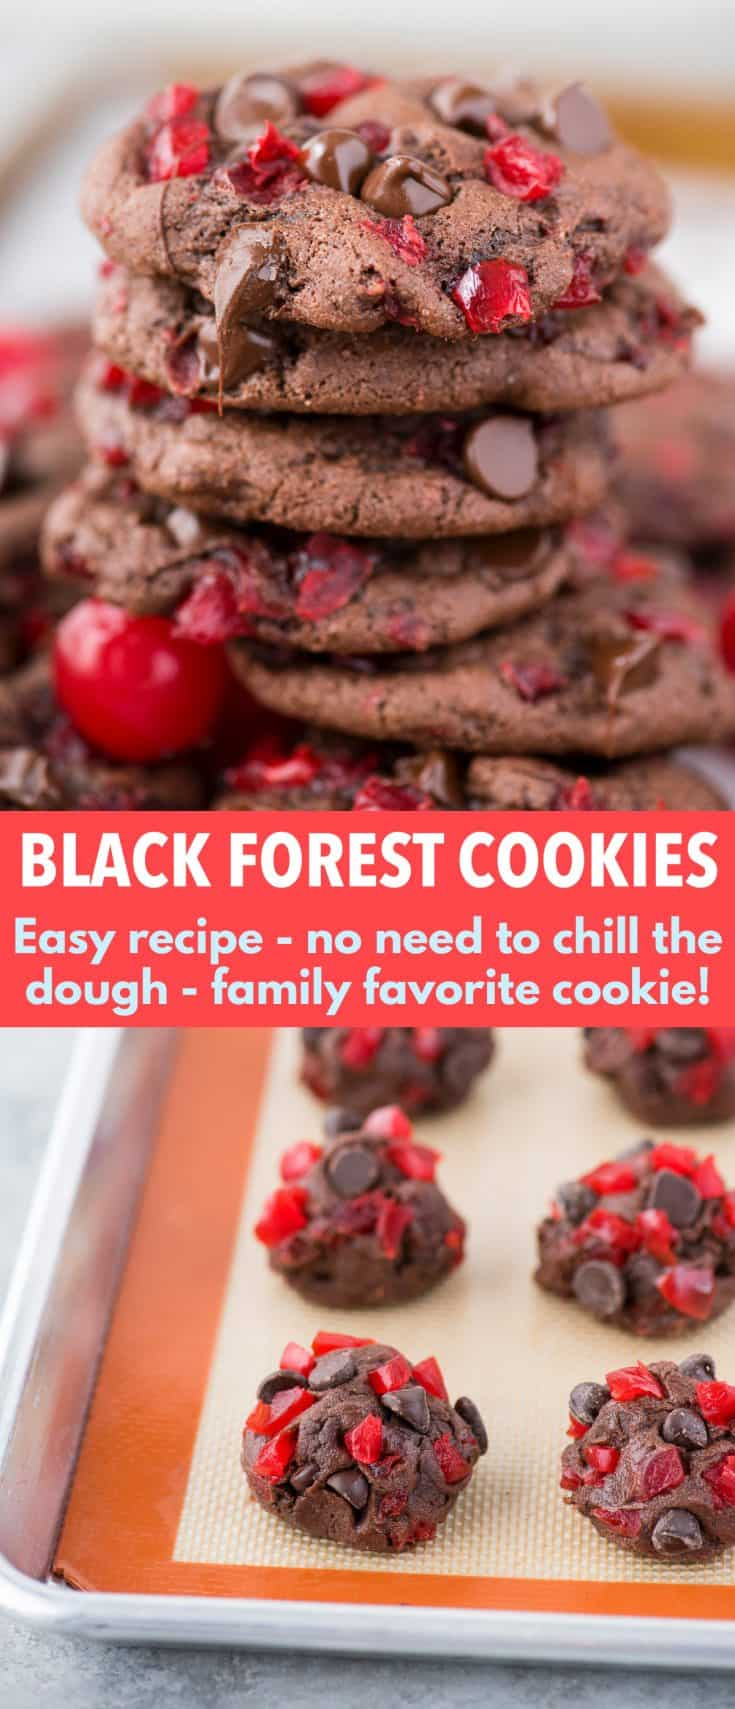 These black forest cookies are chocolate-y, chewy & soft and loaded with maraschino cherries and chocolate chips. Chocolate cherry cookies are easy to make, only 20 minutes from start to finish. Plus no chilling of the dough is needed! #blackforestcookies #cookies #cherrycookies #chocolatecookies